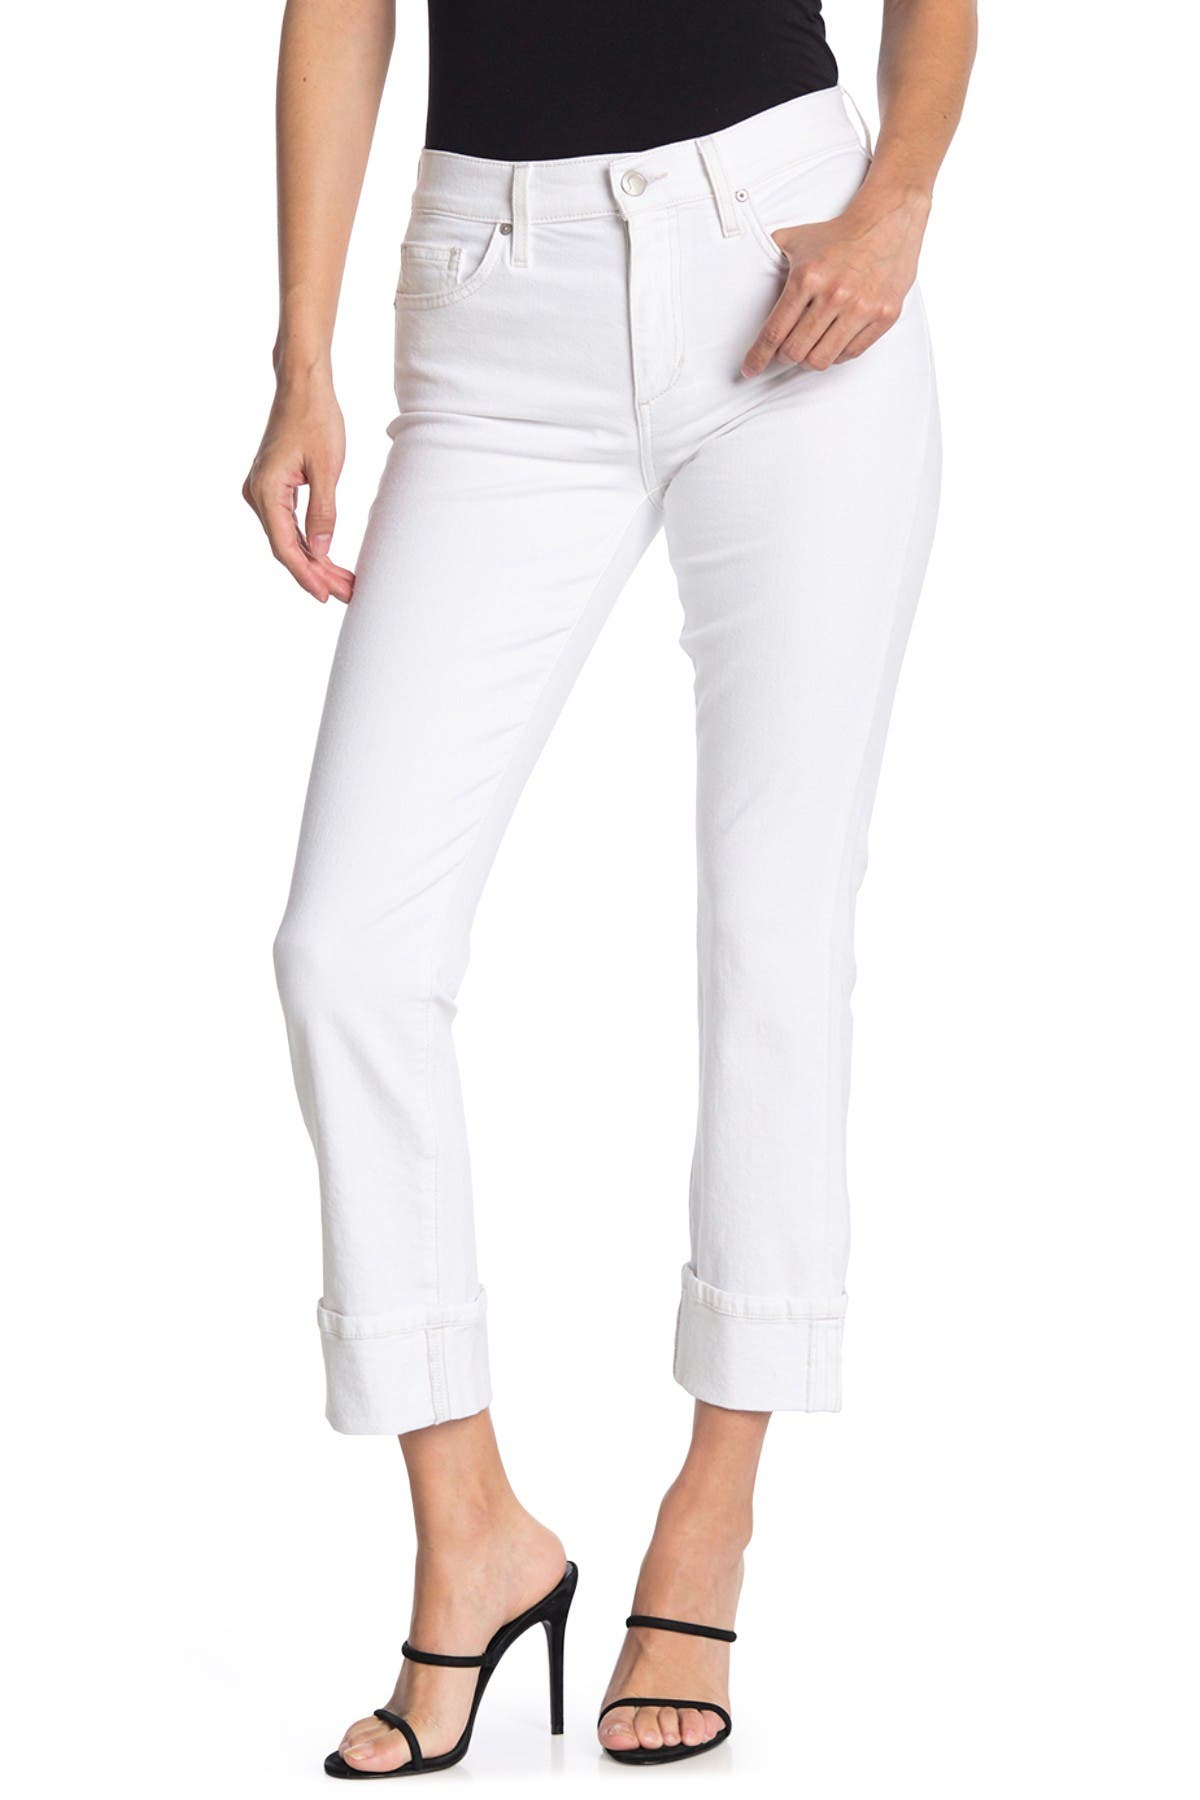 Image of Joe's Jeans Mid Rise Straight Crop